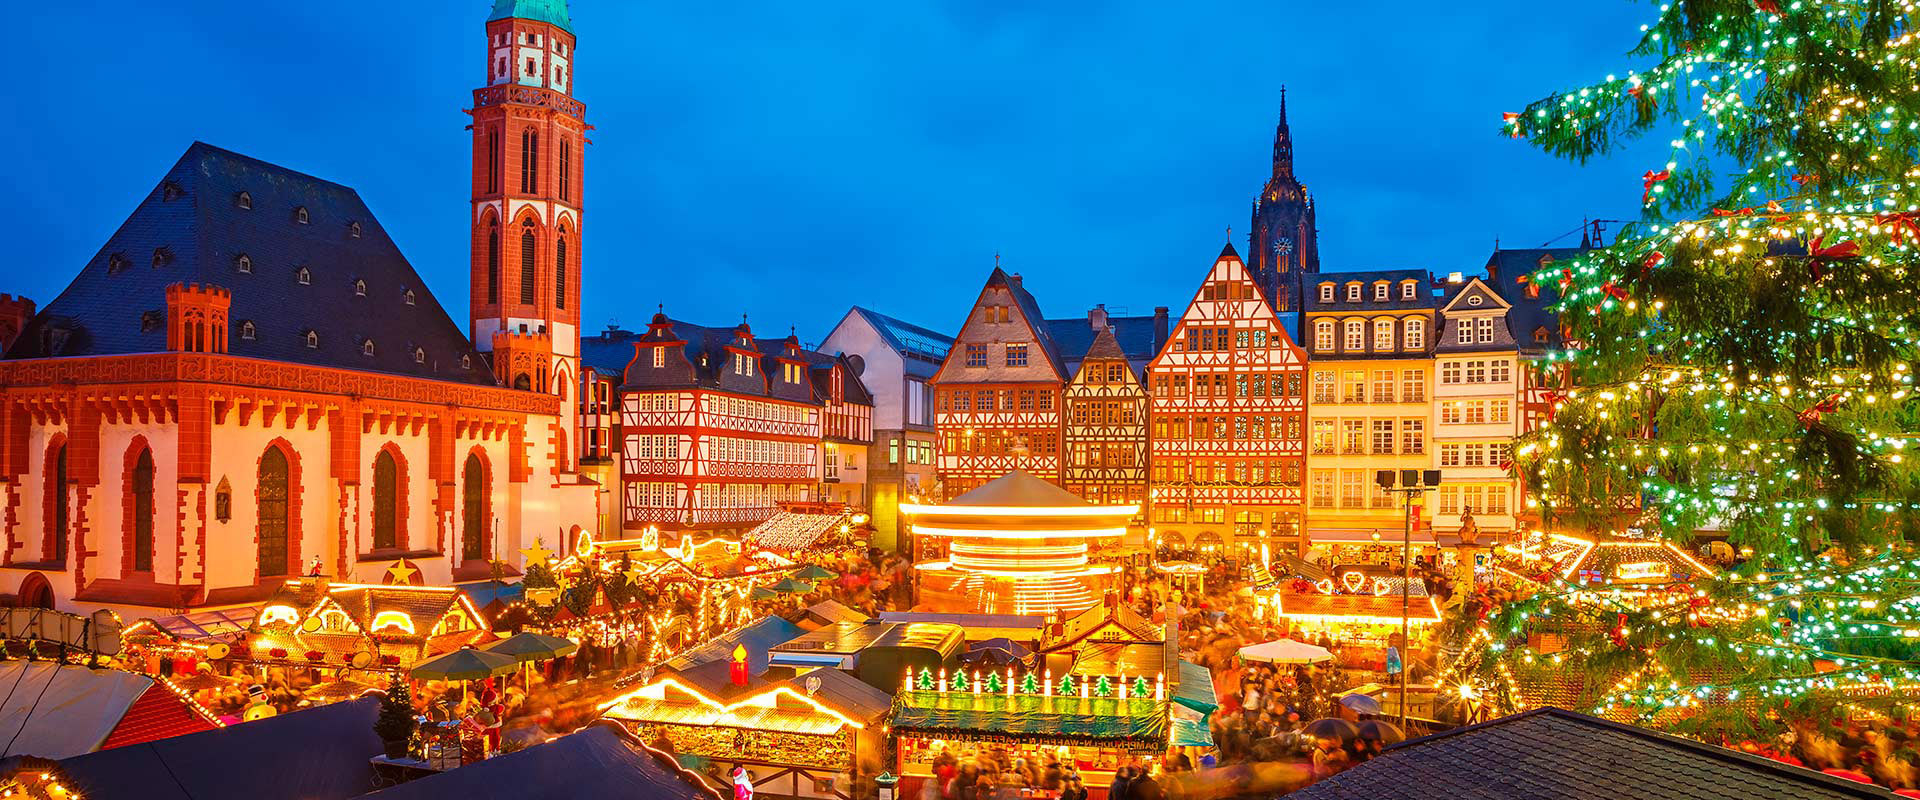 rhine christmas markets 2019 start zurich end amsterdam scenic luxury cruises